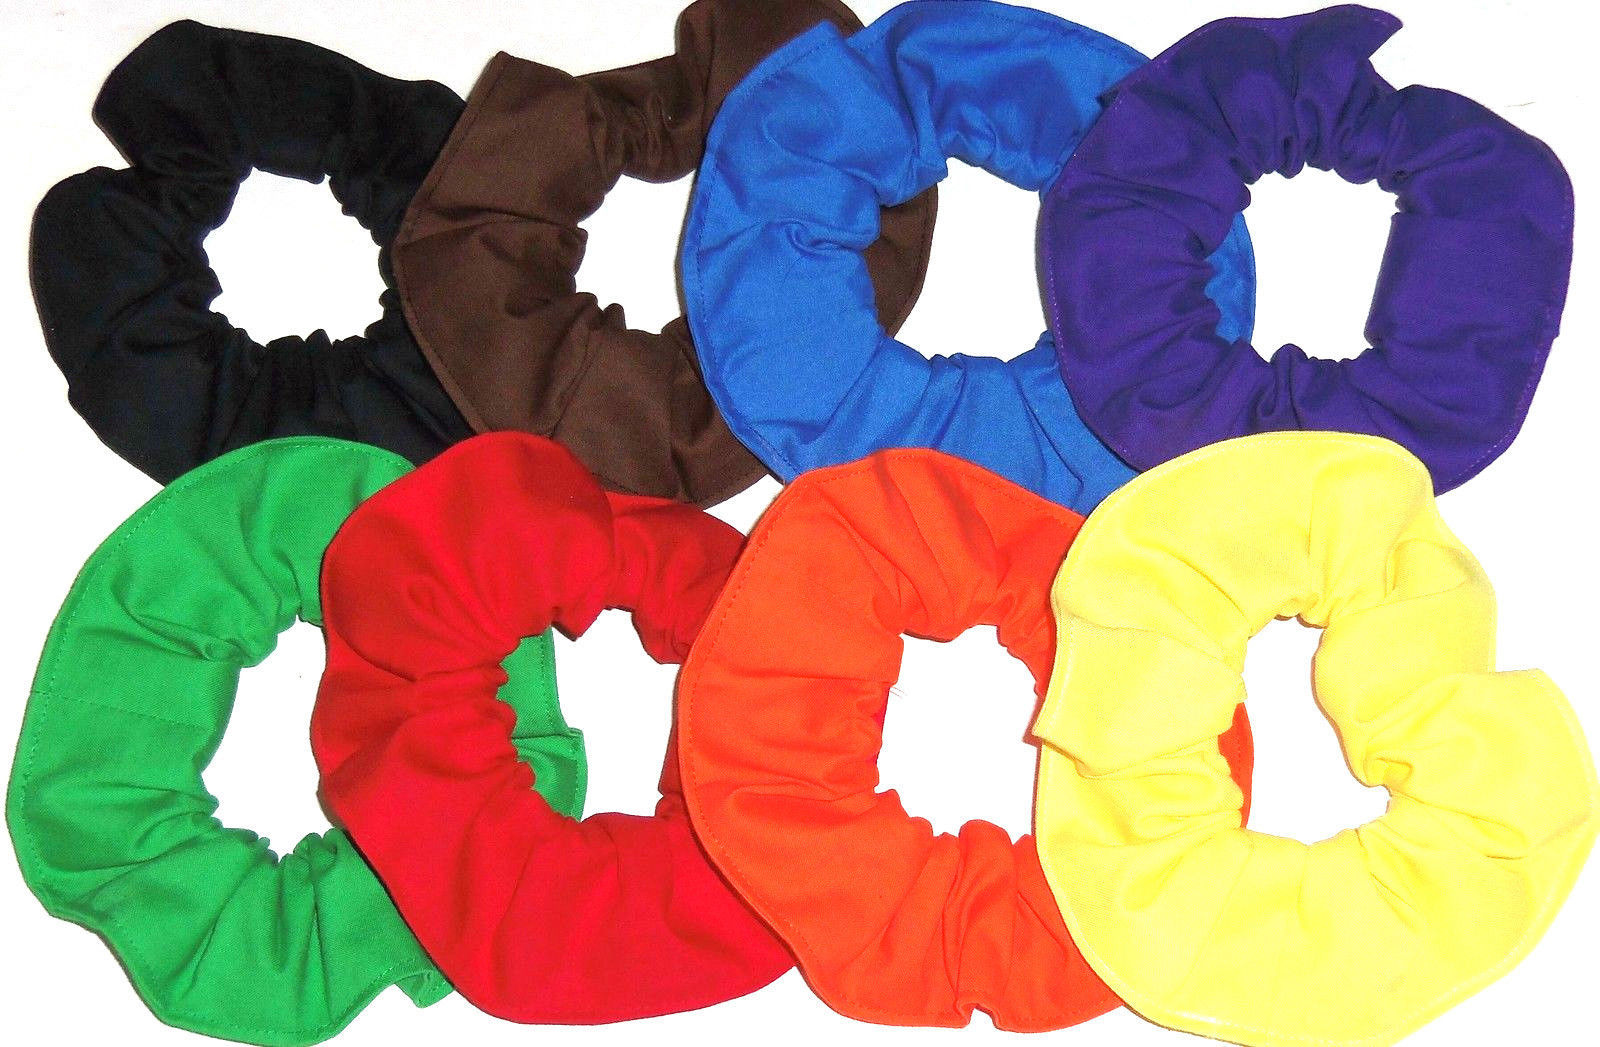 8 Hair Scrunchies by Sherry Red Blue Green Yellow Orange Purple Brown Black  - $34.60 - $49.45